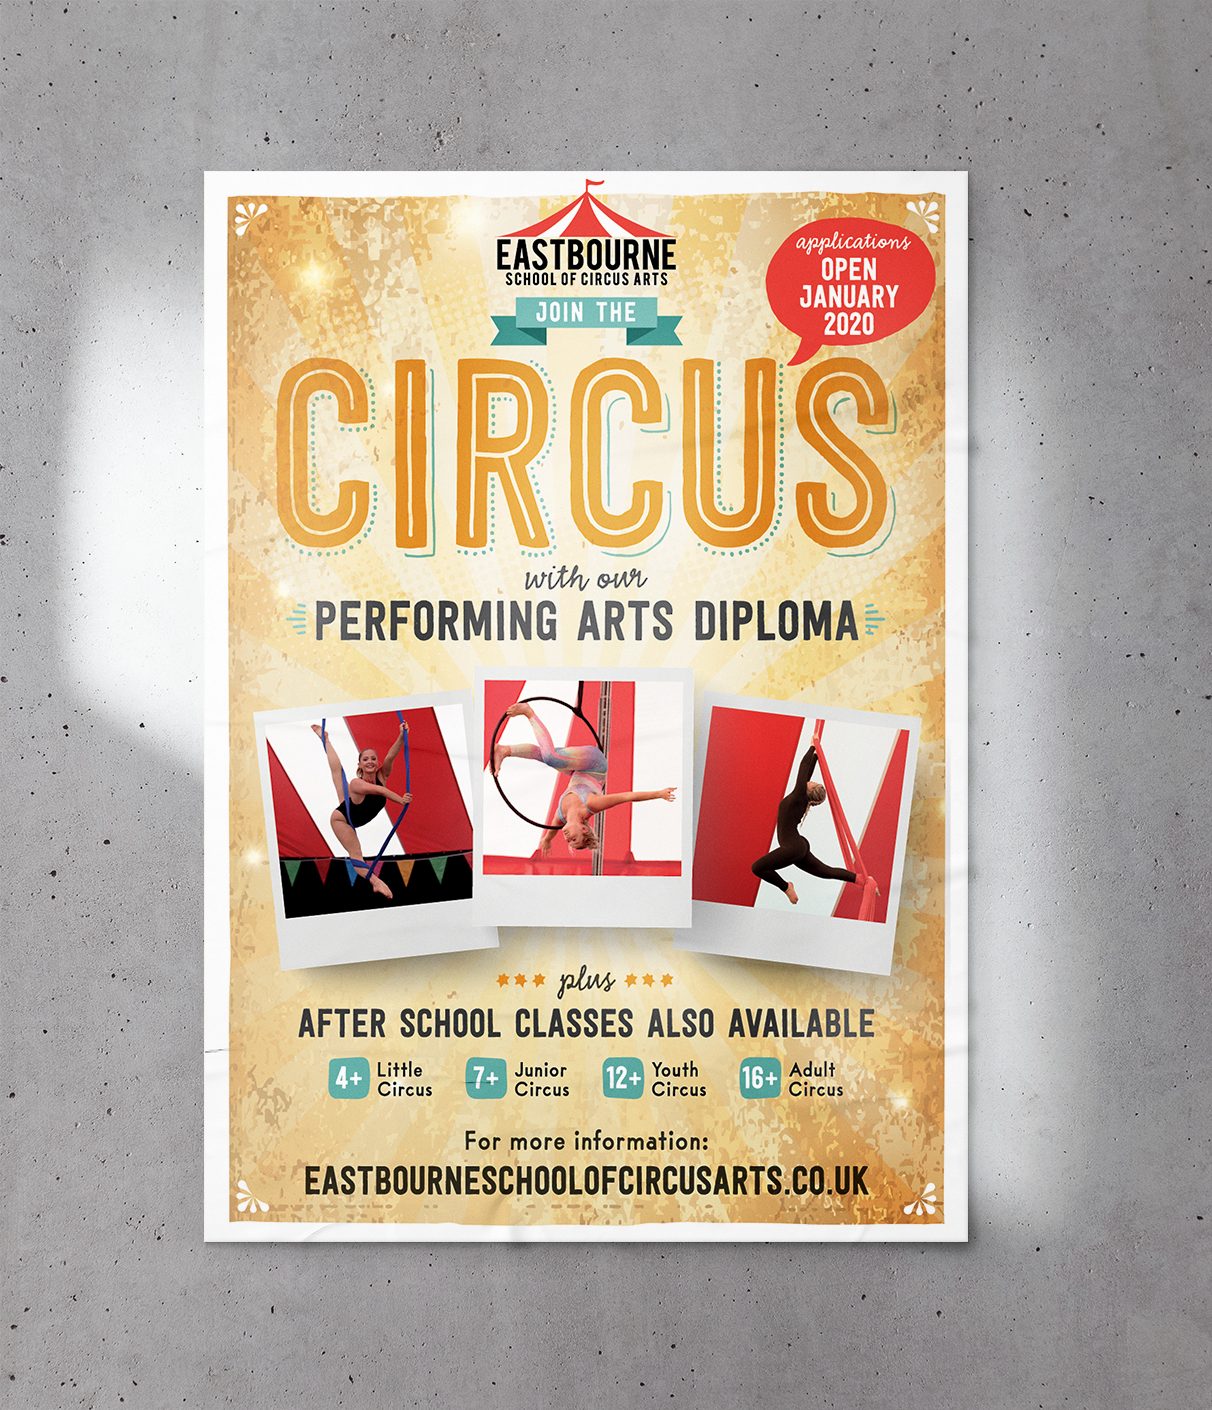 eastbourne school of circus arts poster